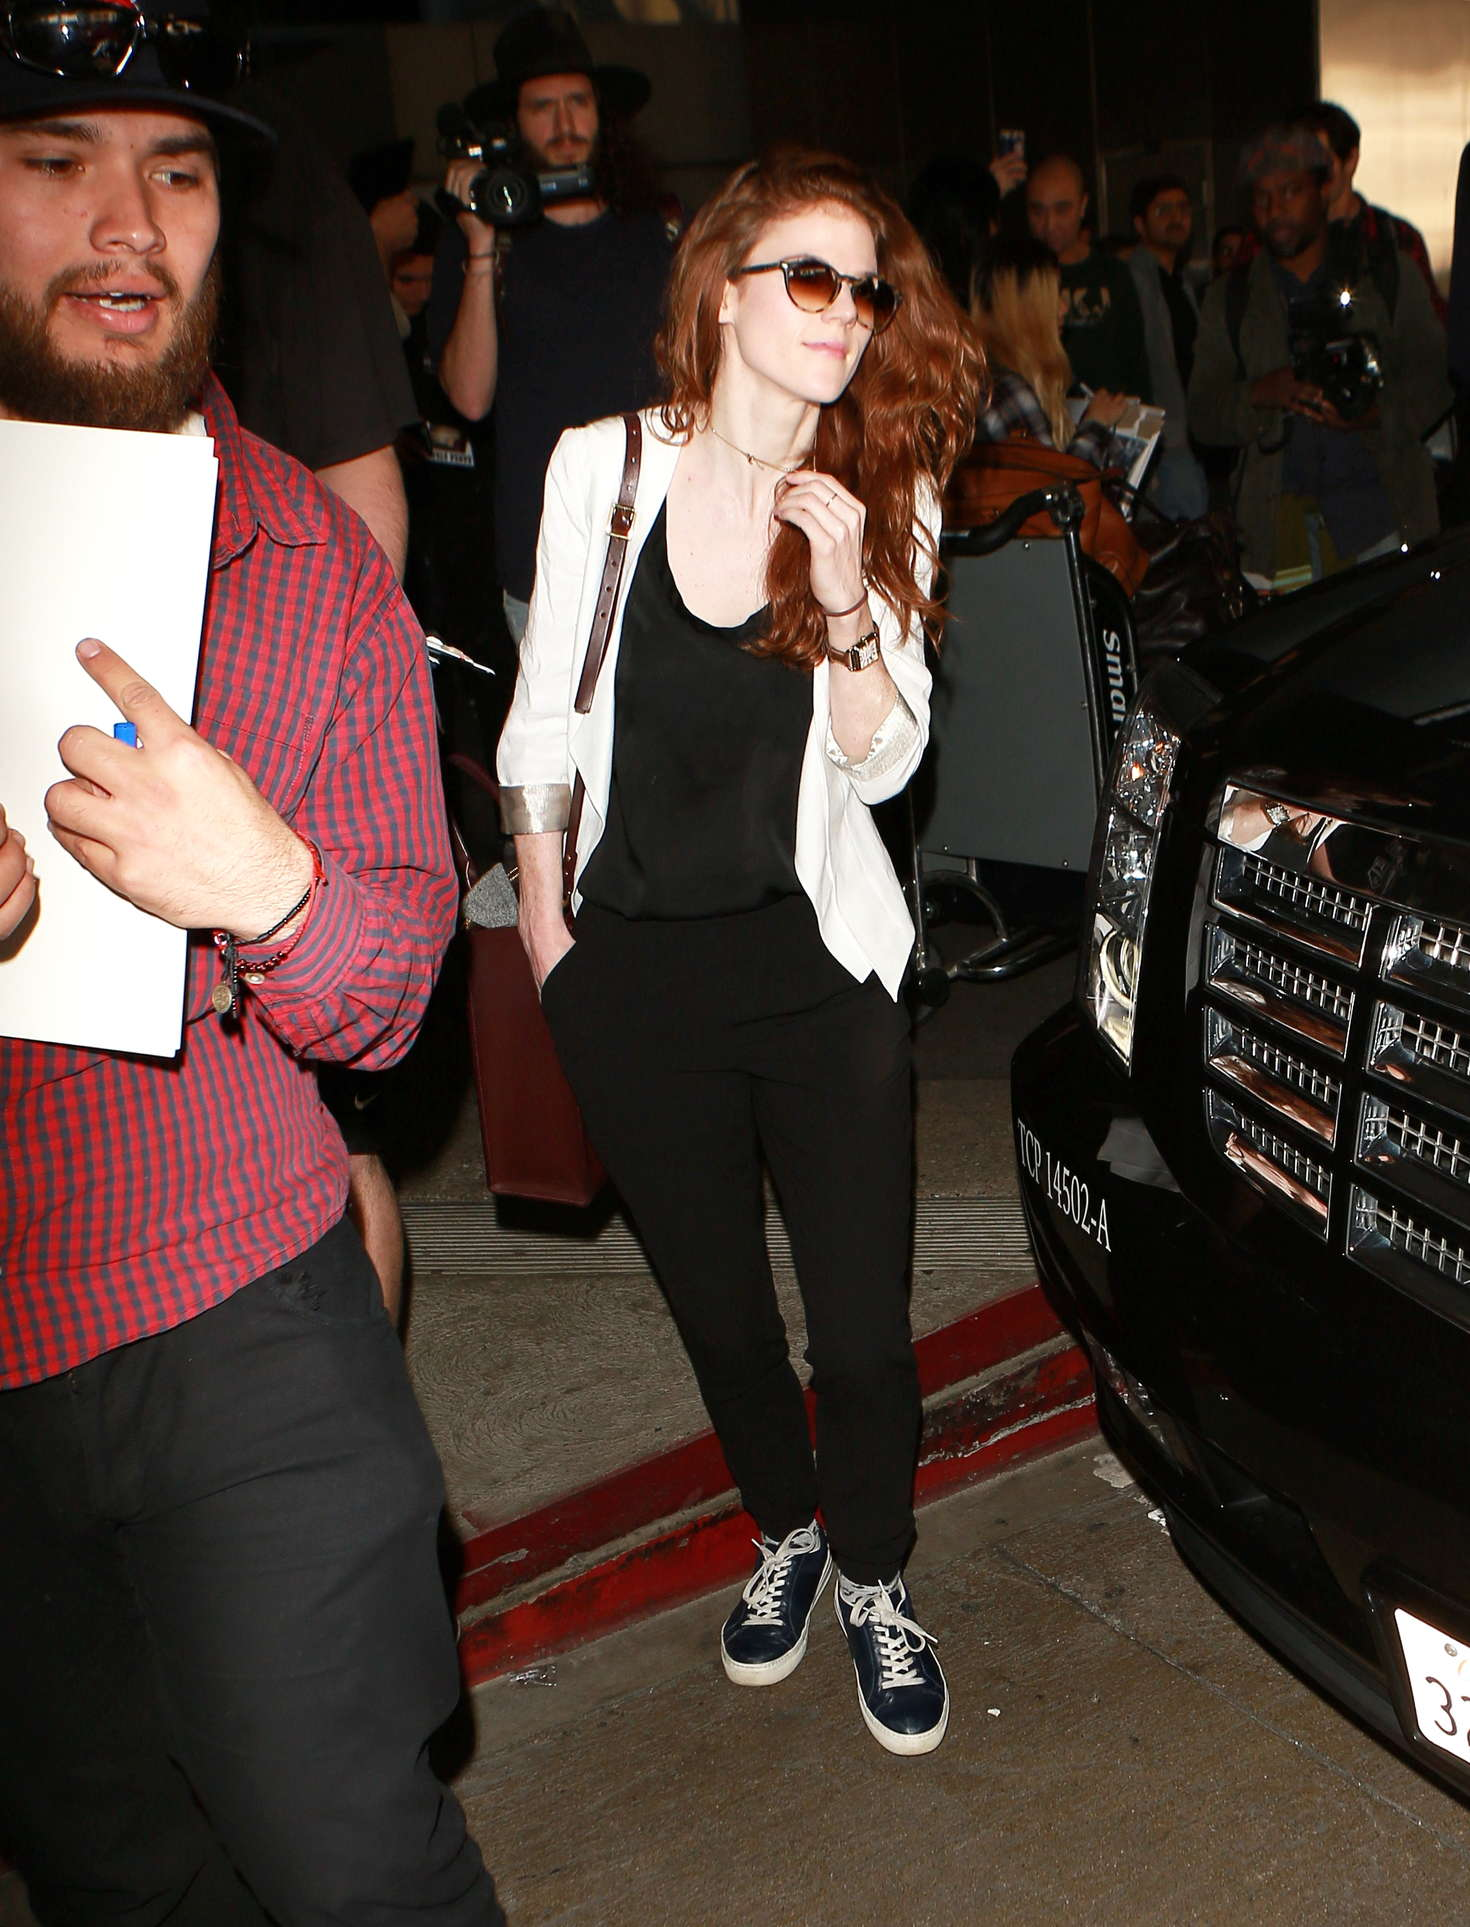 Rose Leslie and Kit Harington at LAX Airport in Los Angeles